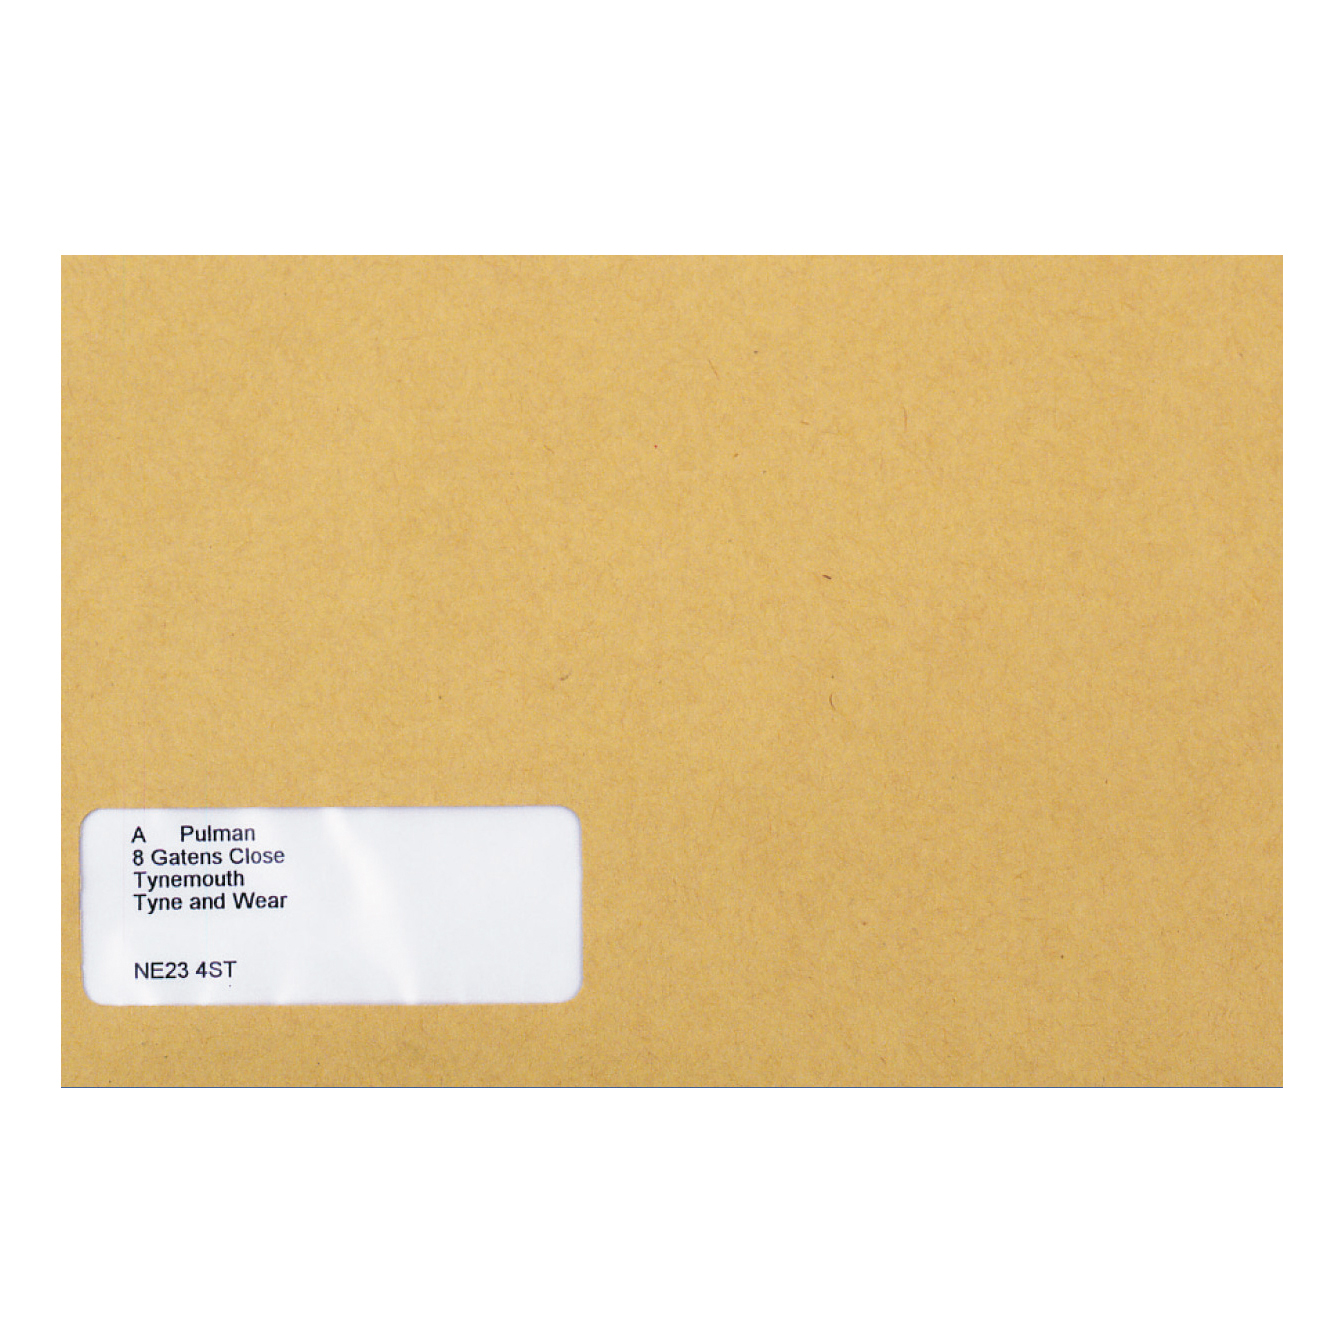 Sage Compatible Wage Envelope Self Seal Window 220x140mm Manilla Ref SE47 Pack 1000